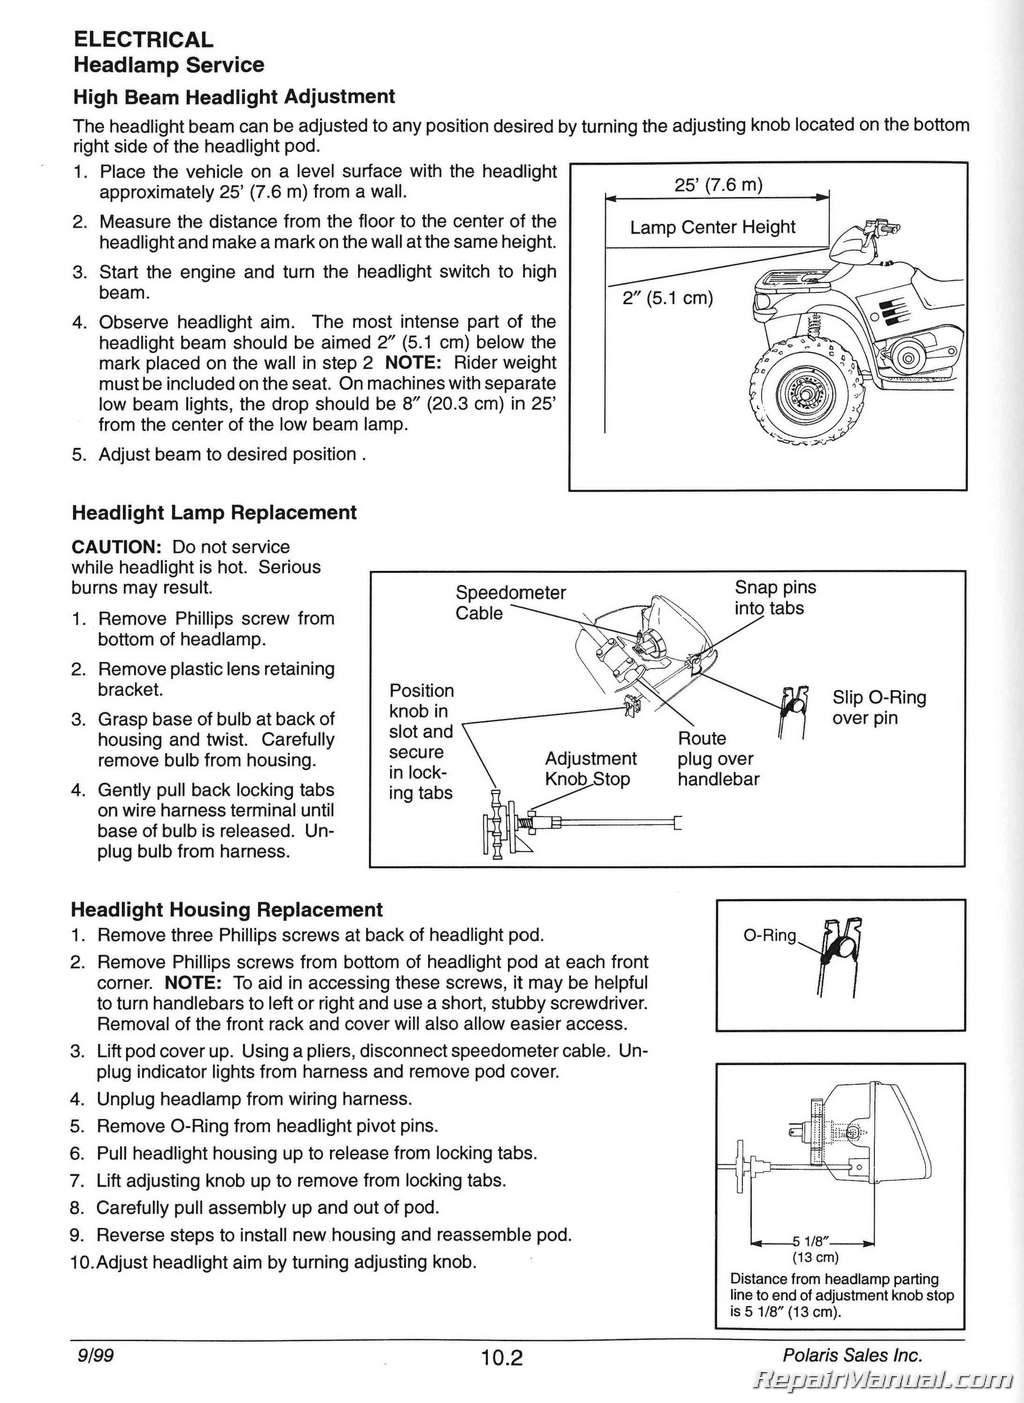 2004 Polaris Atp 500 Ho Wiring Diagram Auto Electrical 1993 Kenworth T600 Free Picture Files